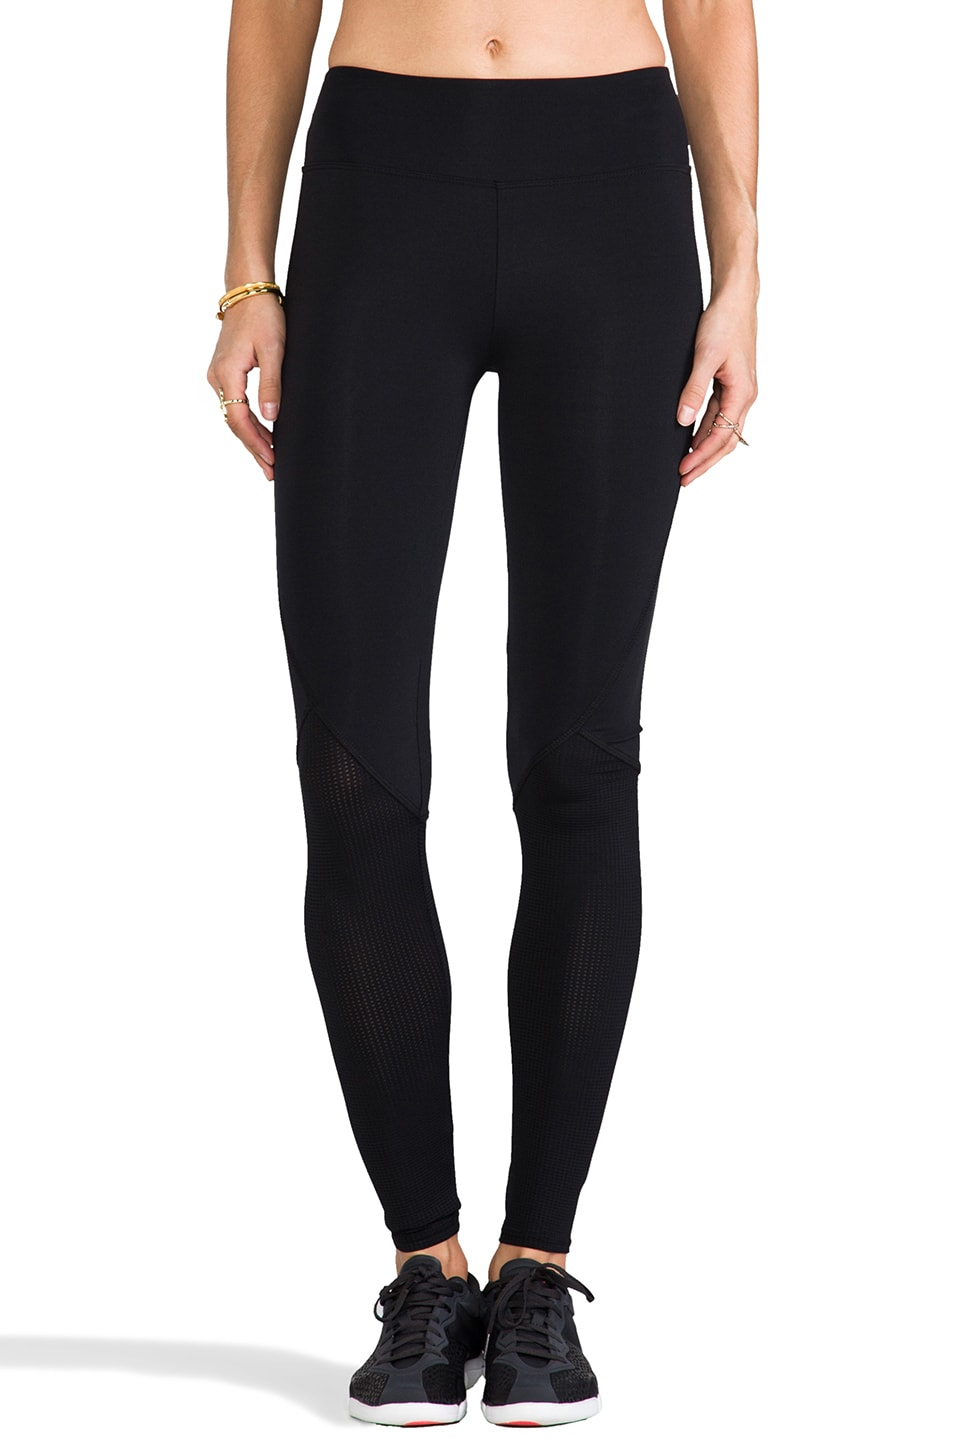 SOLOW Mesh Legging in Black